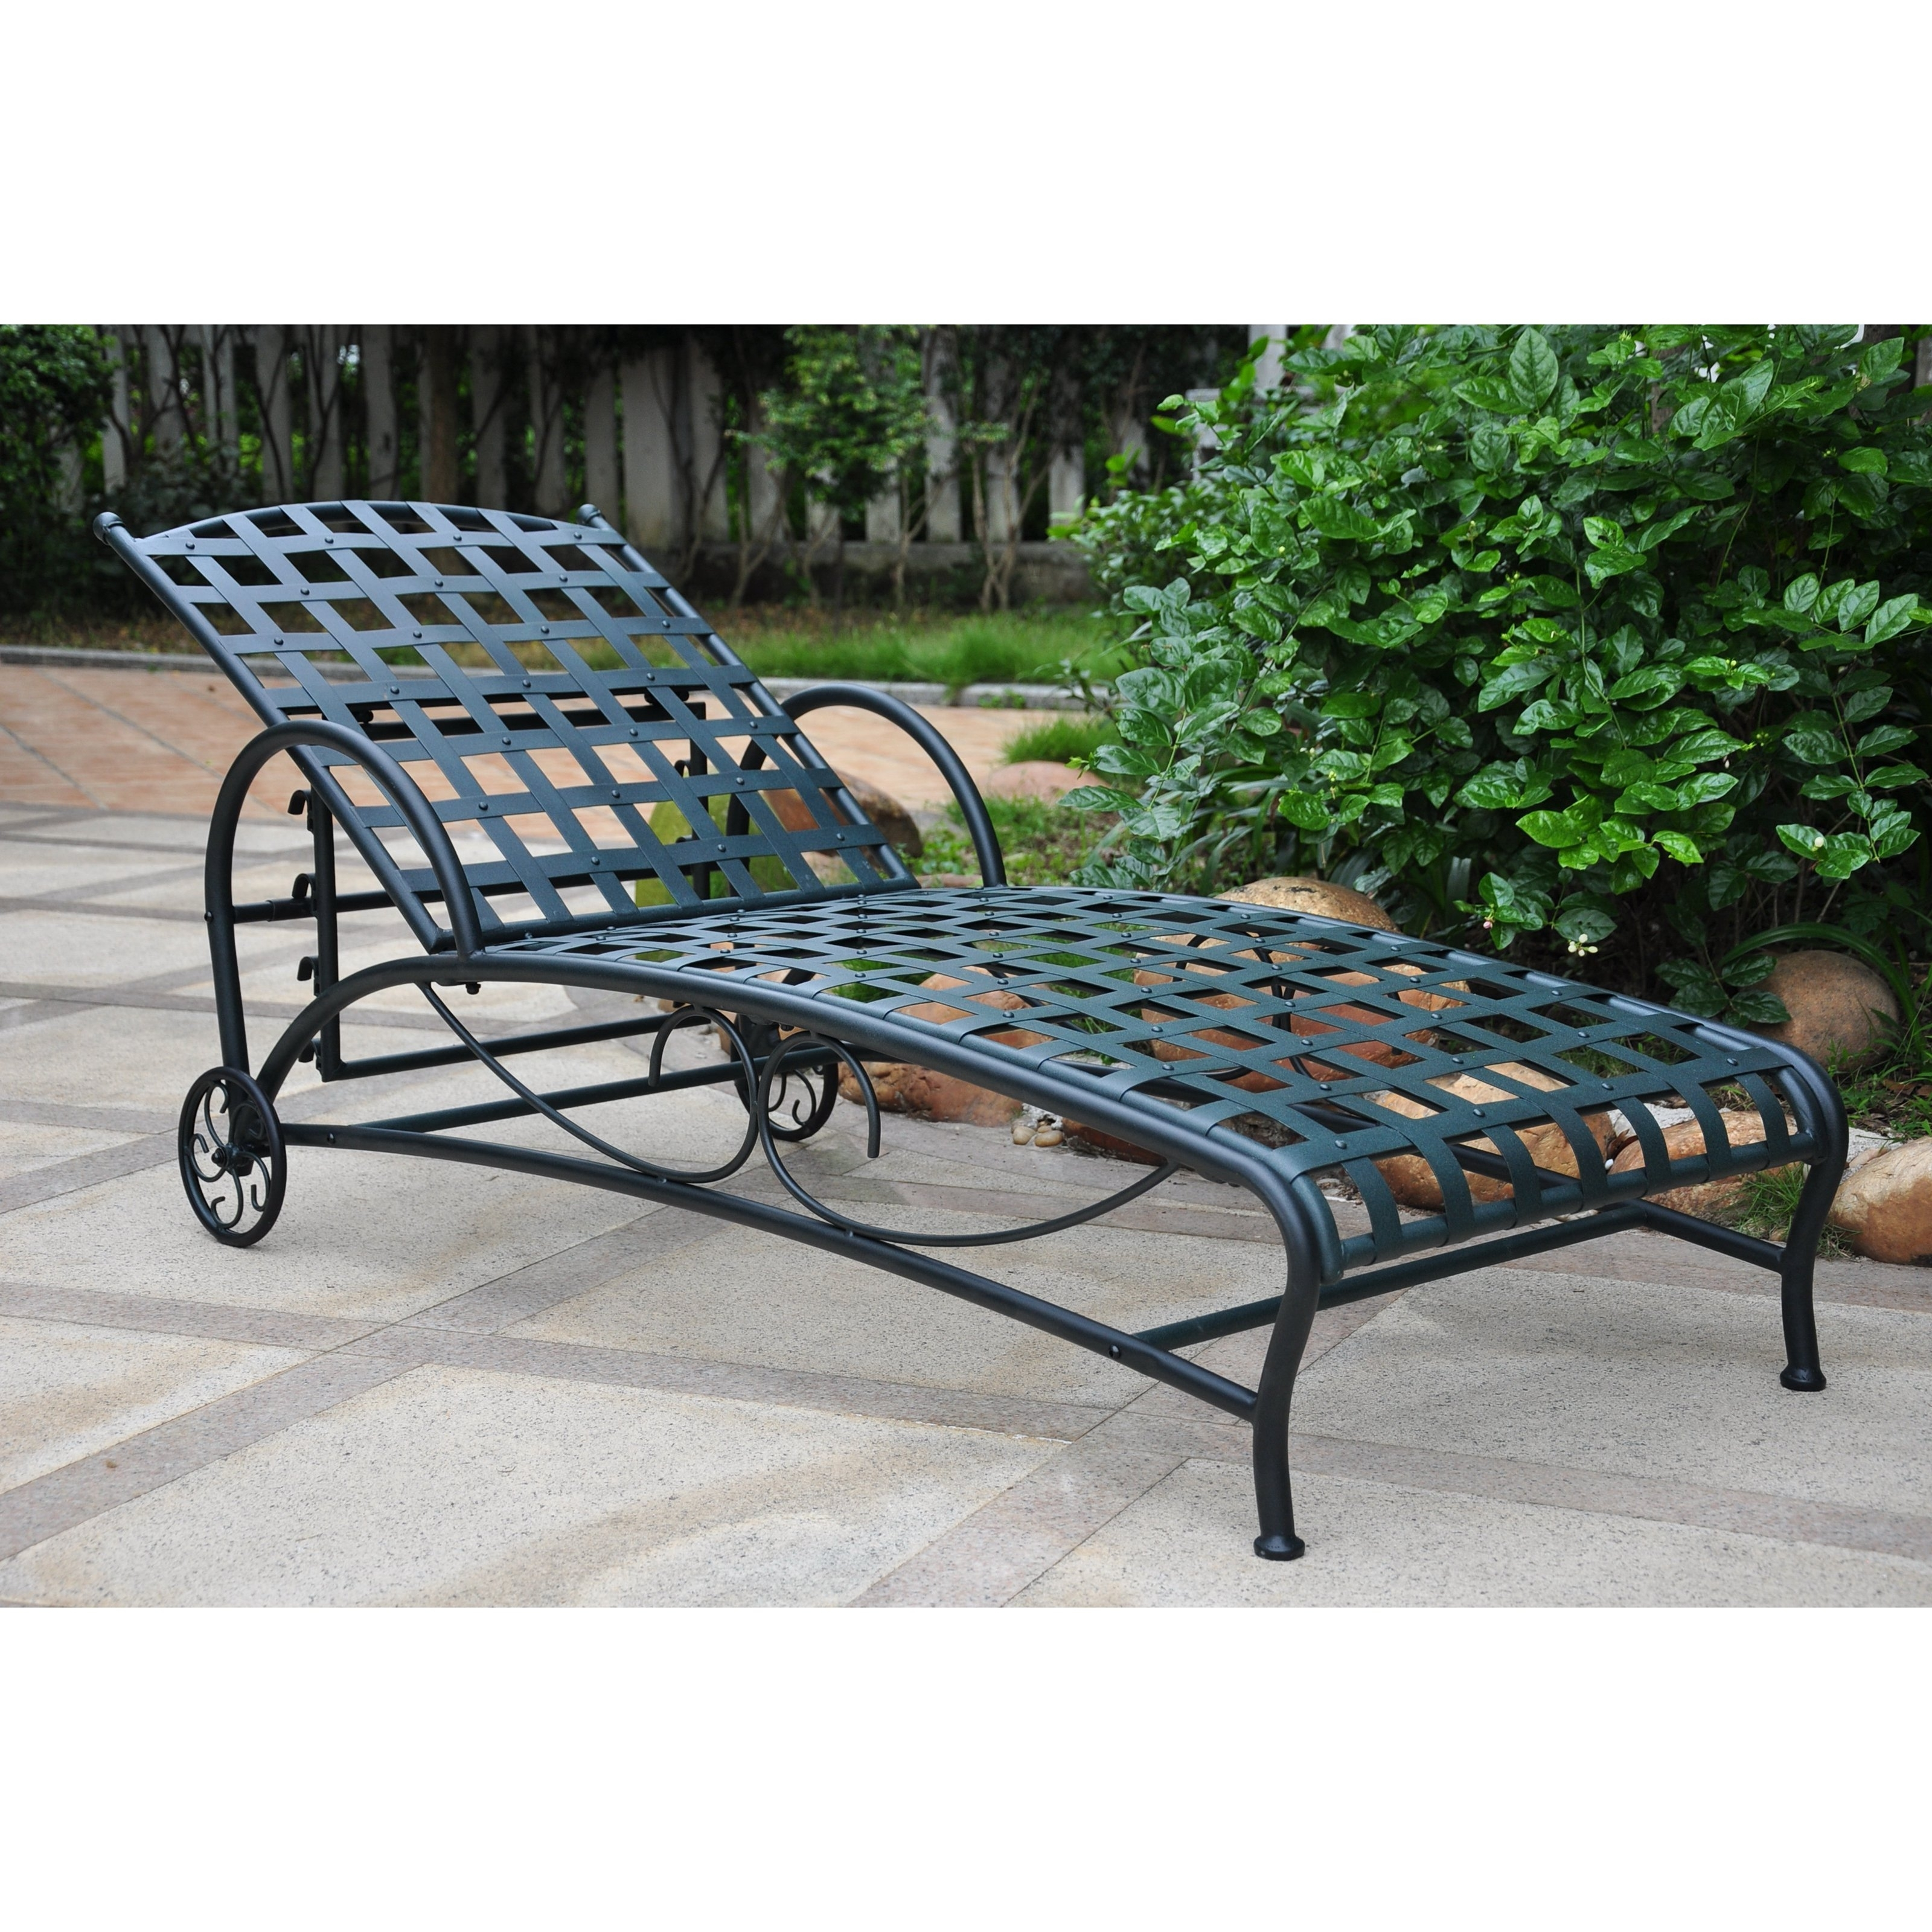 Wrought Iron Chaise Lounges In Most Up To Date Belham Living Capri Wrought Iron Multi Position Single Outdoor (View 8 of 15)